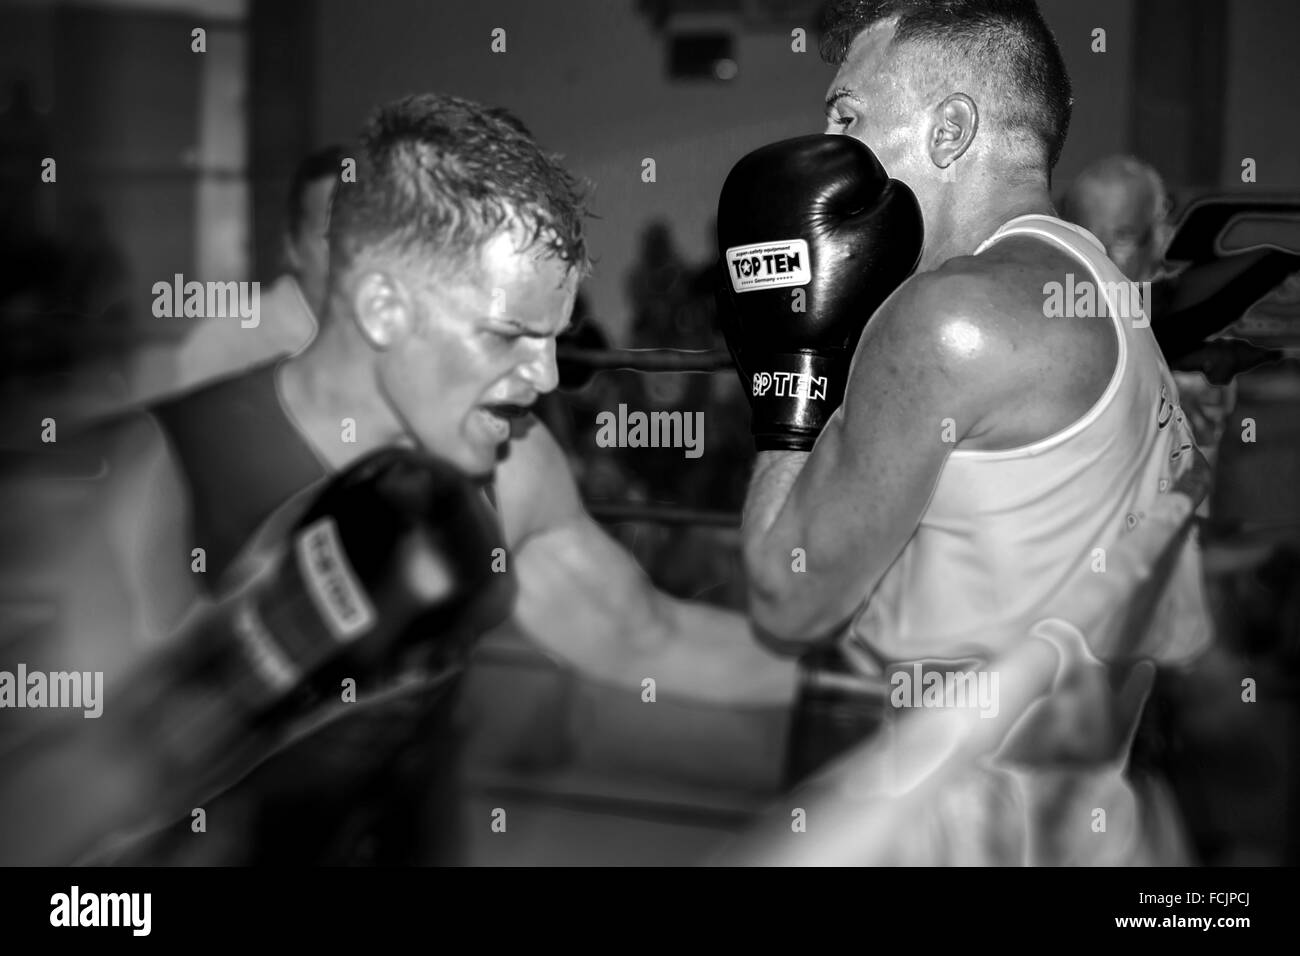 A low blow in a boxing match between two young men - Stock Image